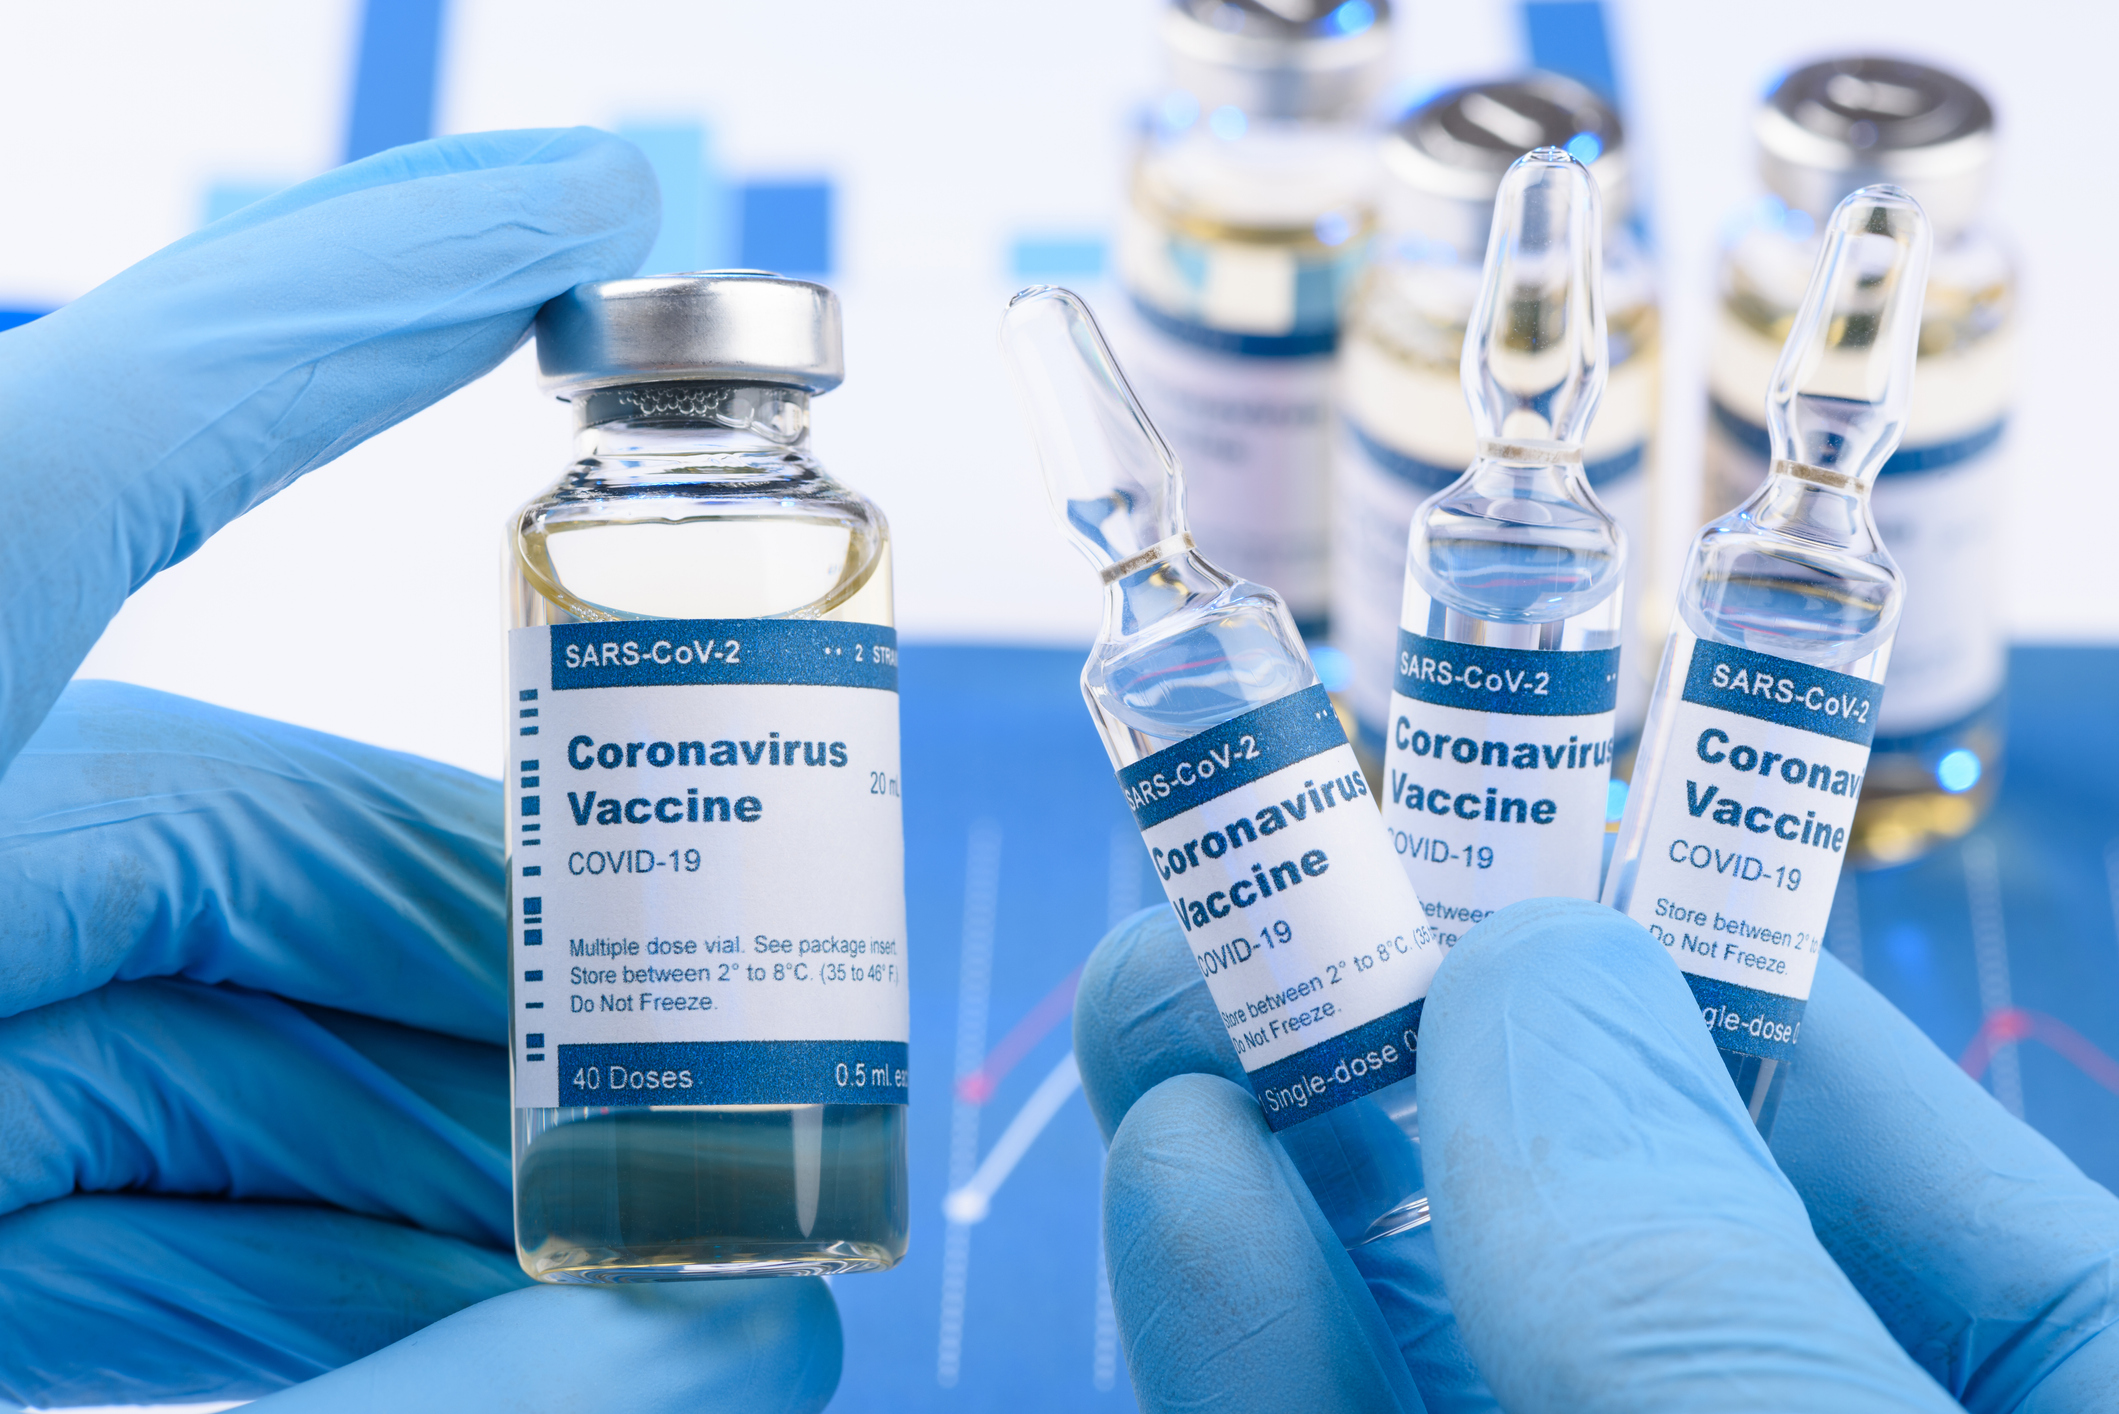 Melissa in the Morning: Vaccines Overseas